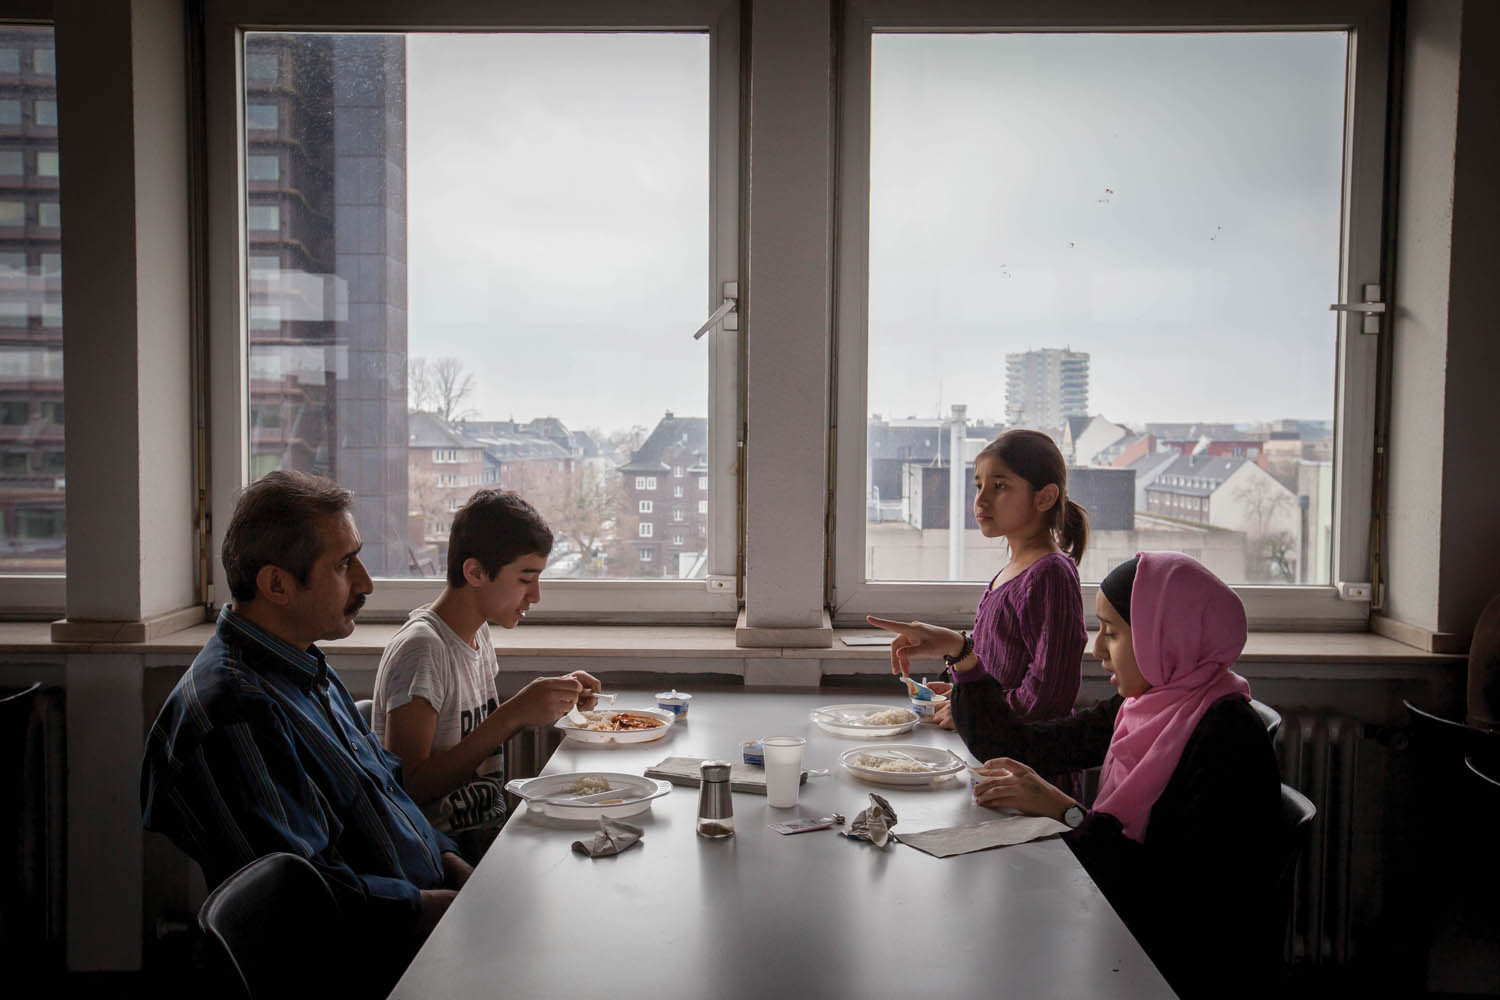 "At the shelter, residents do not have individual kitchens. They must all eat at the cafeteria on the fourth floor.  ""Every day my family goes upstairs to get food and wait in line,"" Milad said. ""When we ask for more, they say we can't have any. I don't know why."" Photo by Diàna Markosian."